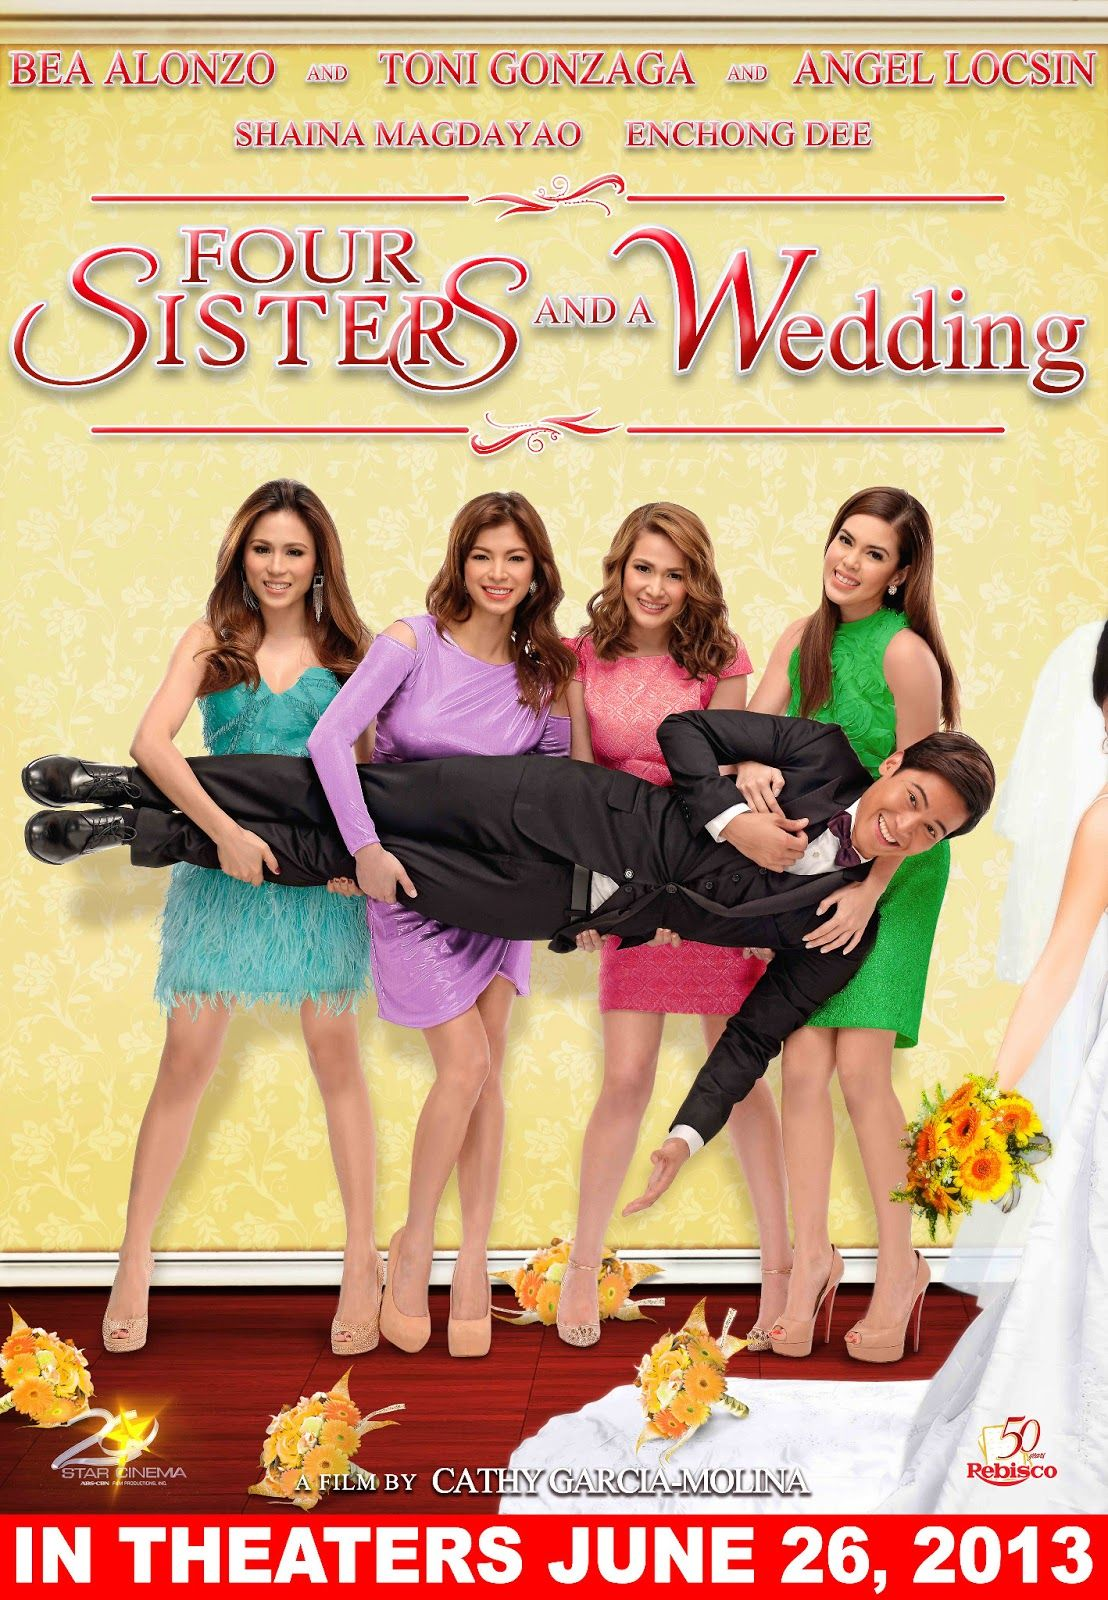 Four Sisters And A Wedding 26 07 2013 Pinoy Movies Four Sisters Wedding Movies